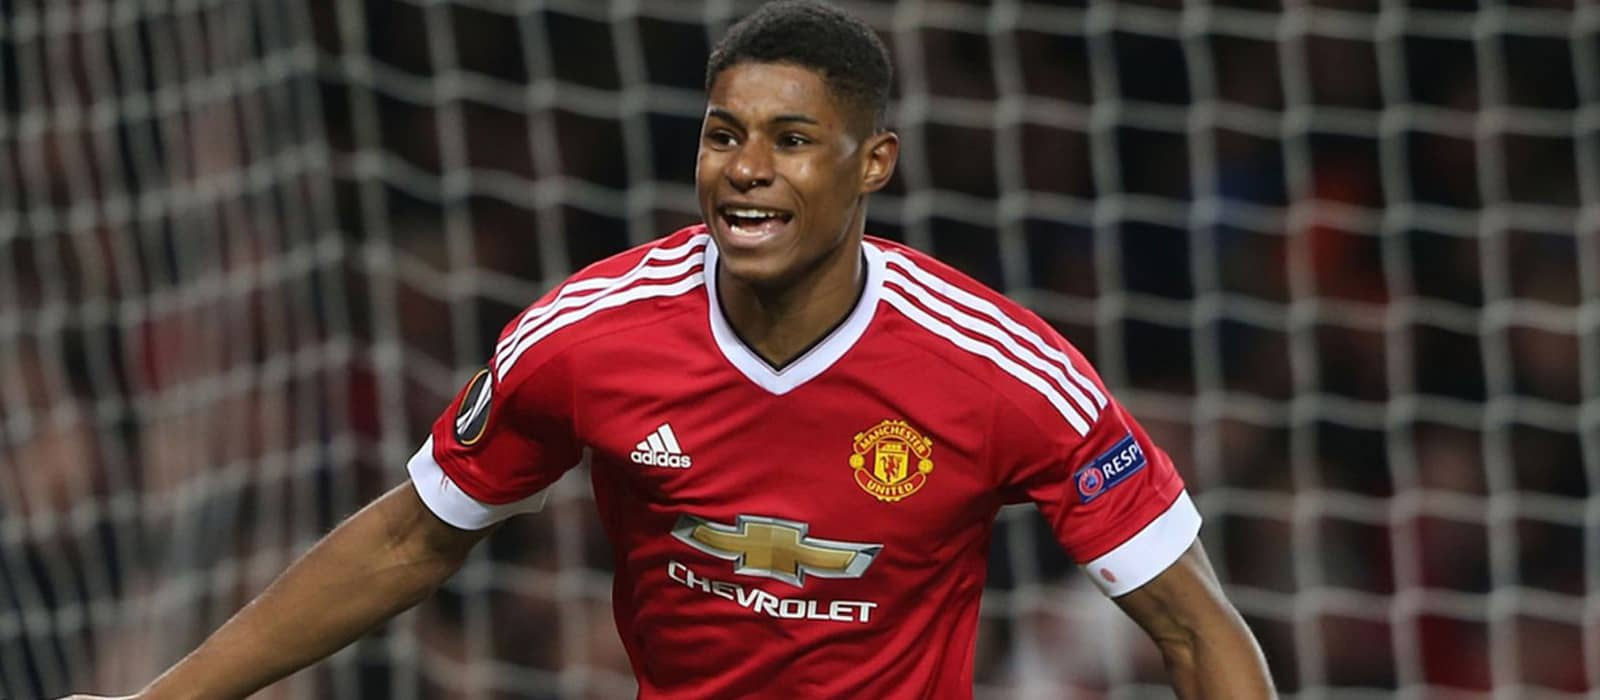 Marcus Rashford named 2016 Jimmy Murphy Young Player of the Year